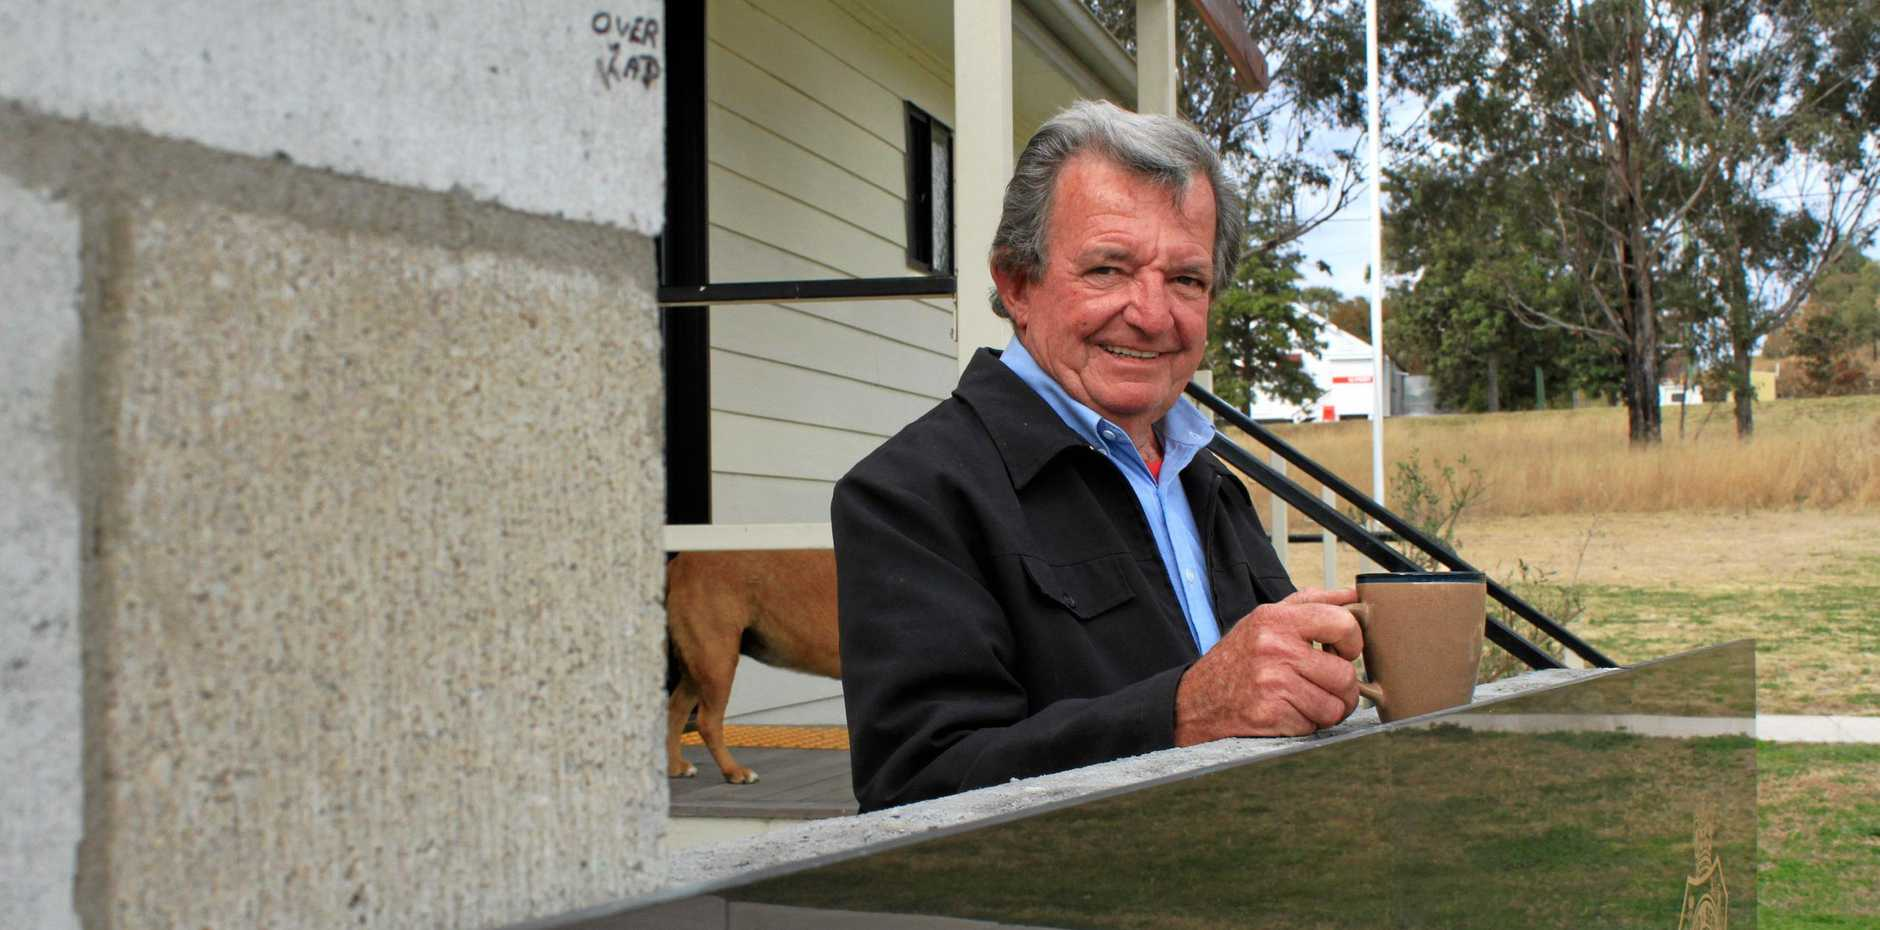 CRANKY CAMPERS: Leyburn RSL president Gary Sprott is pushing the council to reverse its decision to cut free stays at the local camp site.